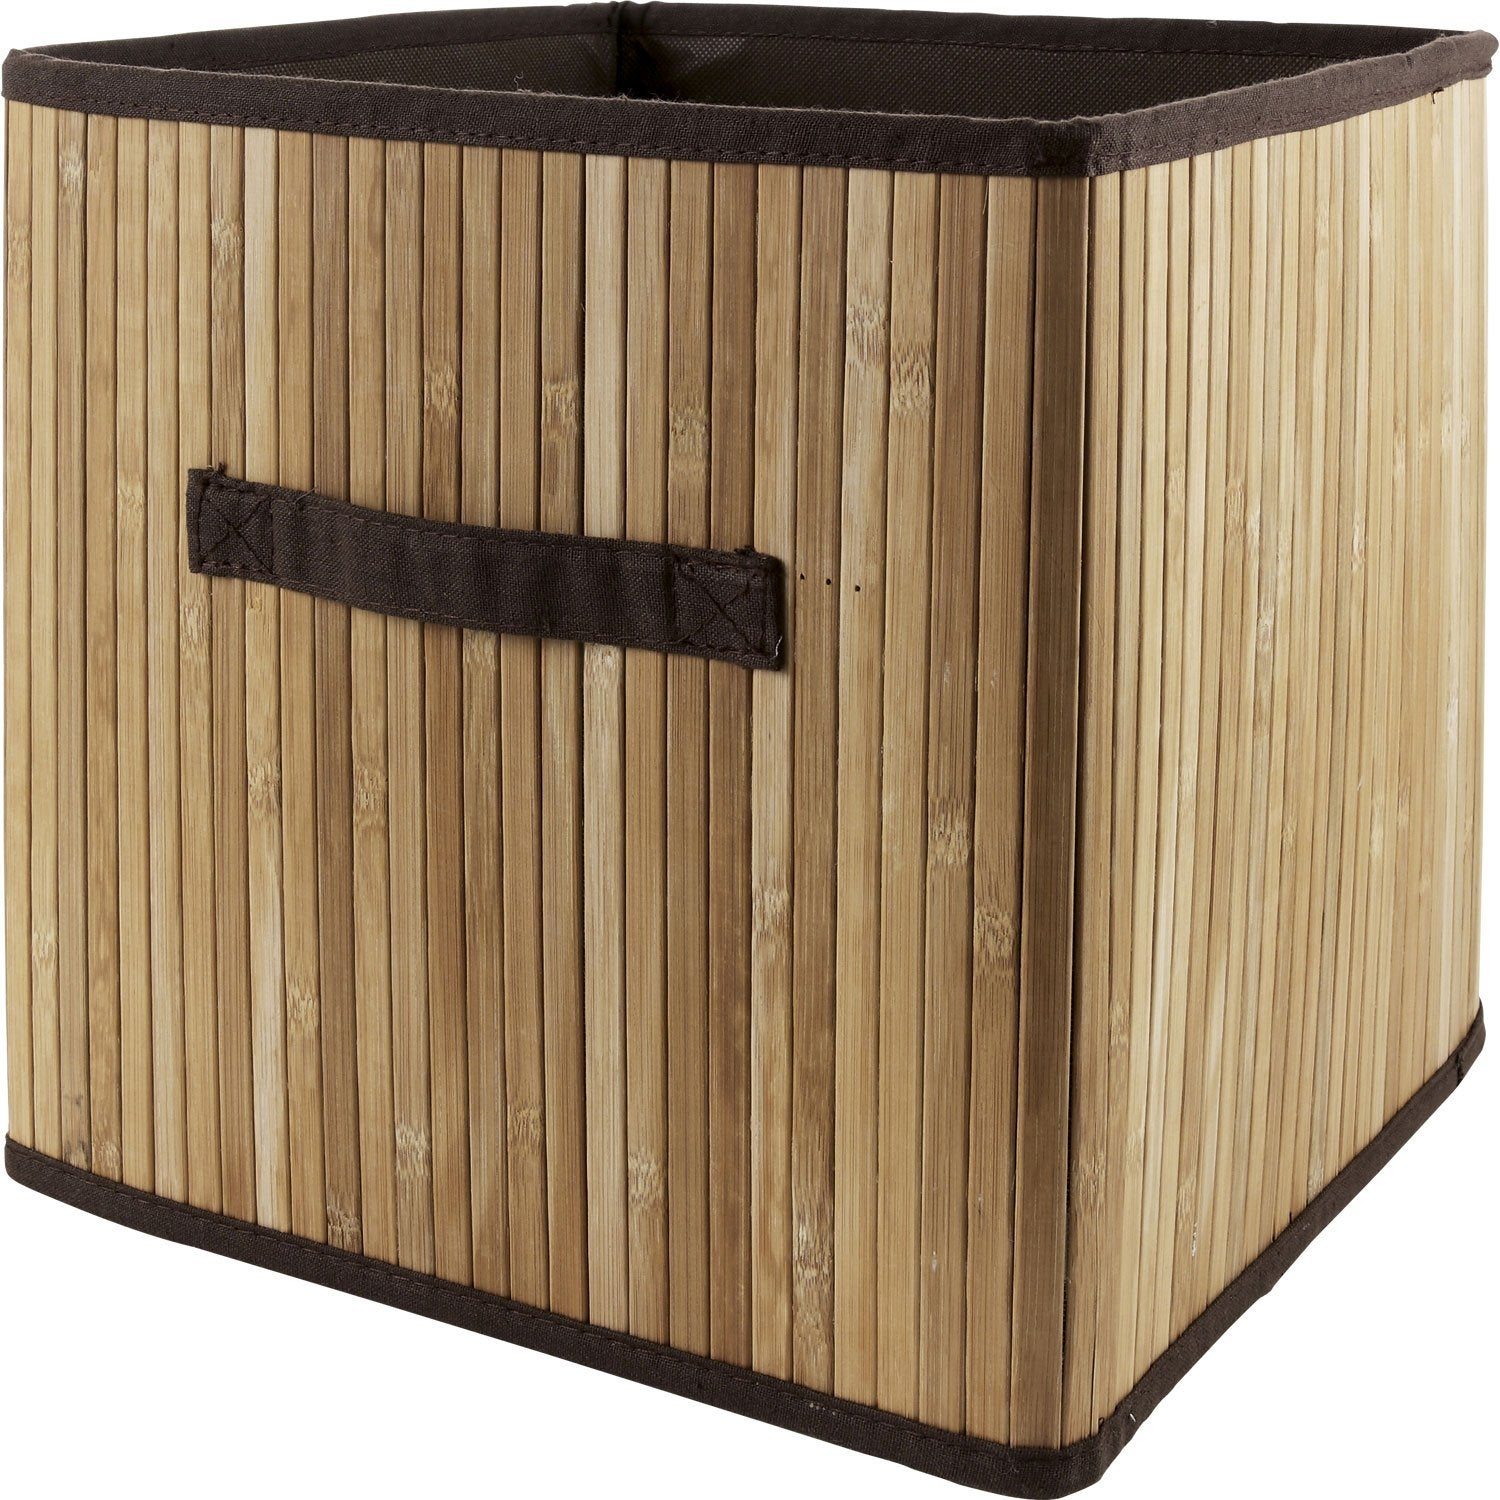 panier de rangement multikaz naturel x x cm. Black Bedroom Furniture Sets. Home Design Ideas